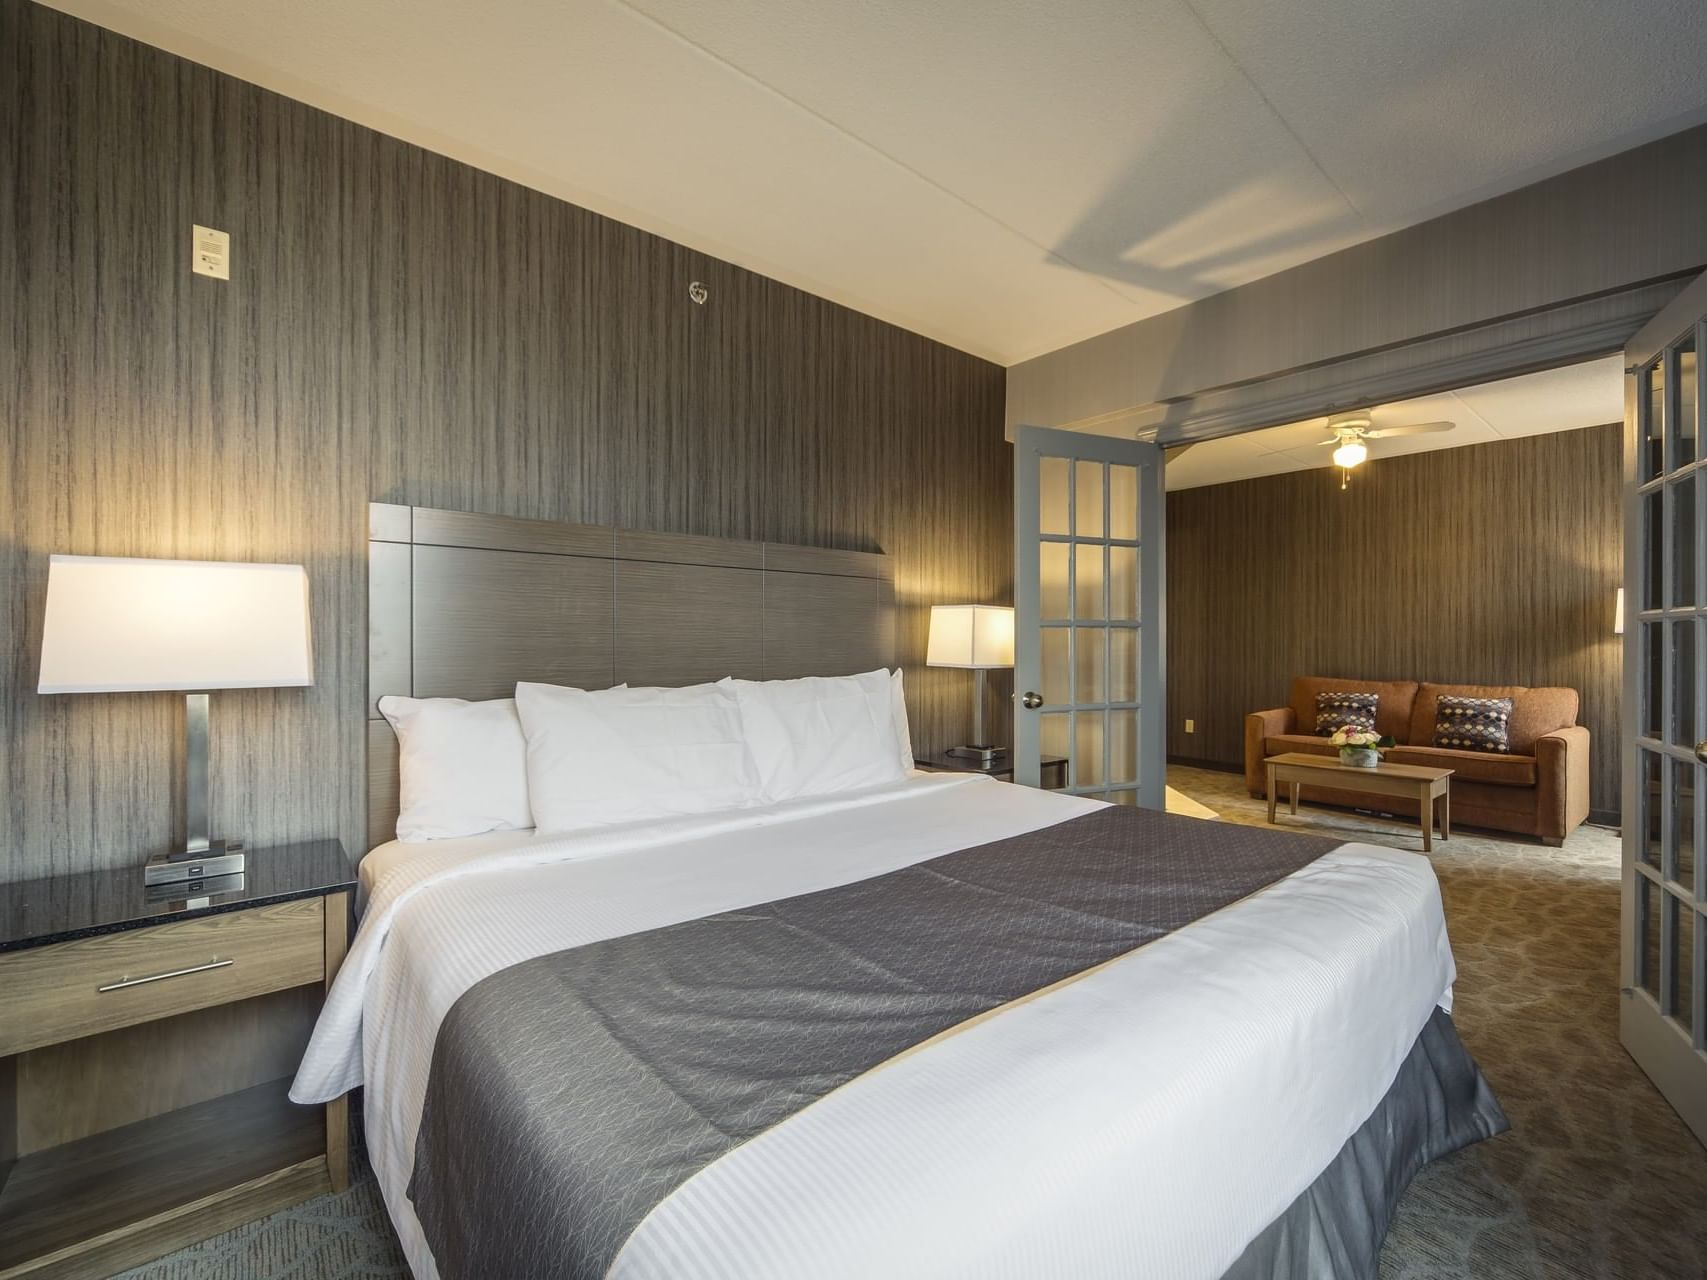 Double bed with couch and Coffee table - Monte Carlo Inn Airport Suites